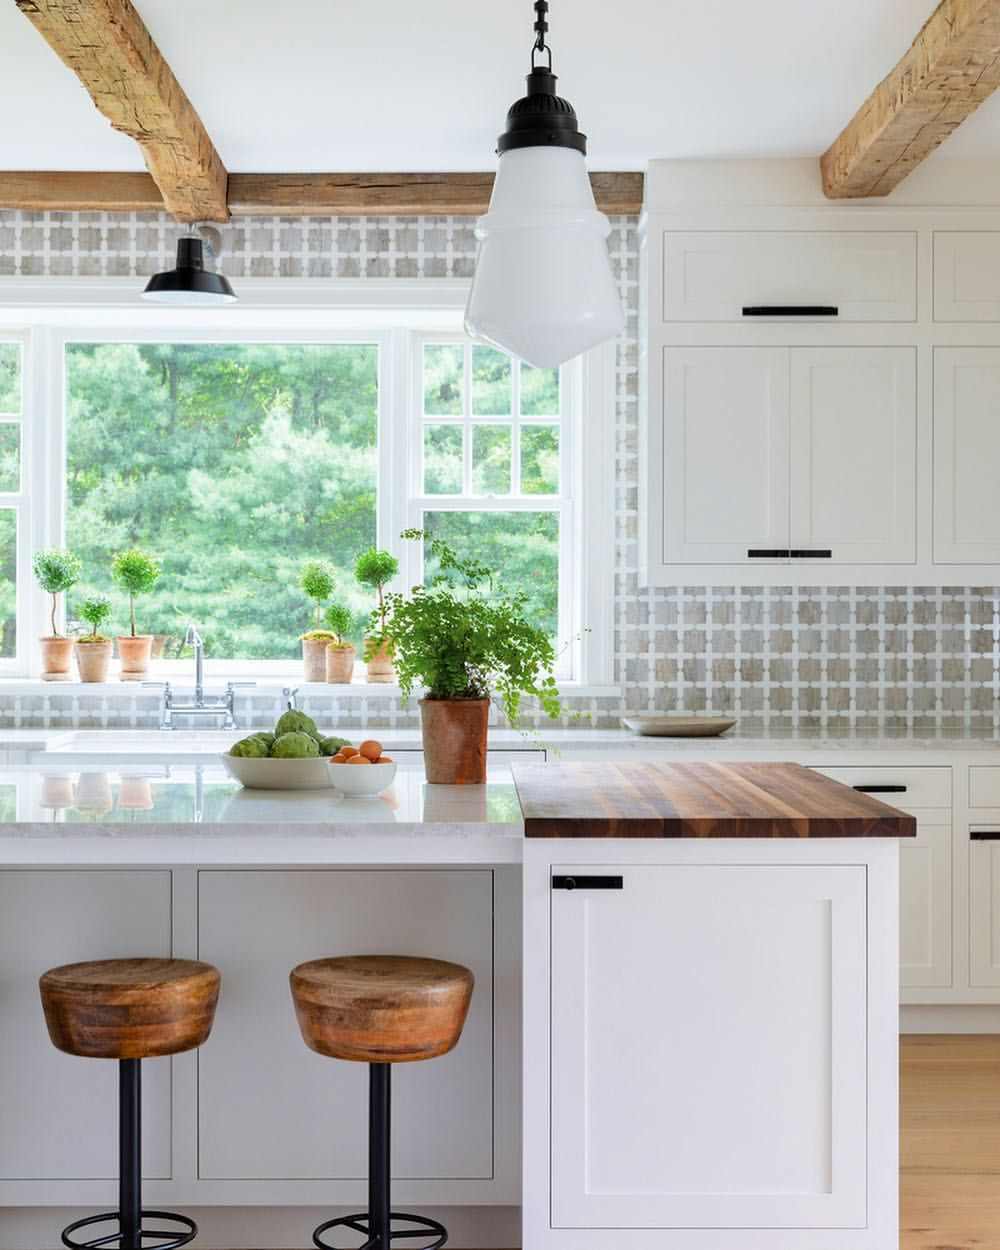 Farmhouse Kitchen To A T Luxeathome Sandow Photo George Ross